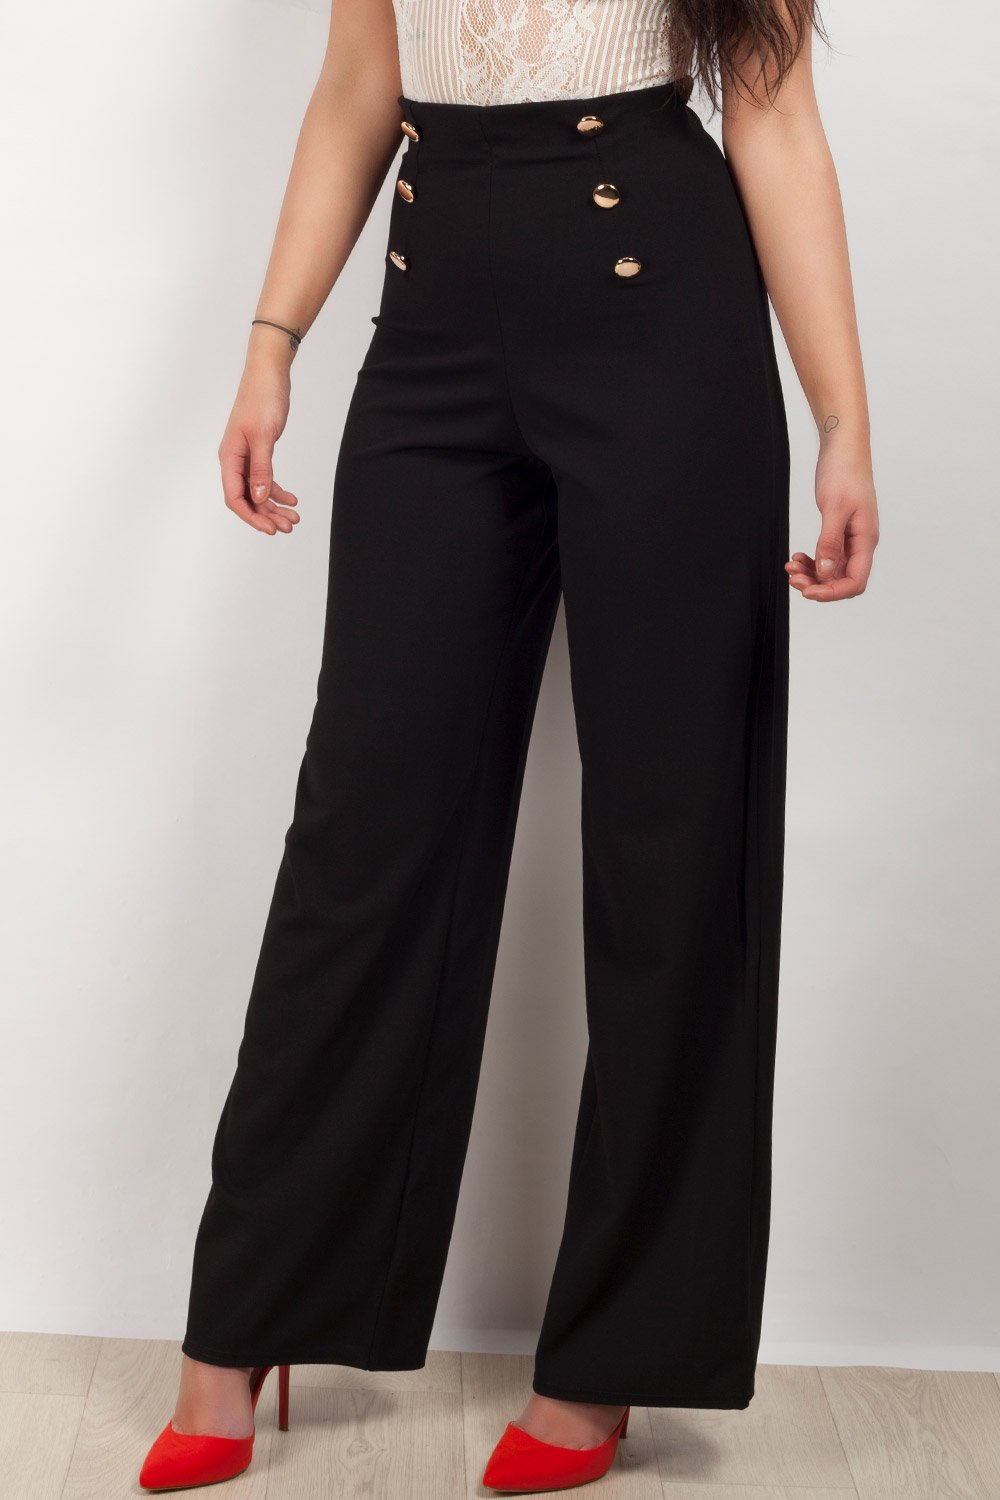 c6a644ad95d7 Womens Wide Leg Palazzo Trousers With Gold Button Detail UK6 - UK14 ...